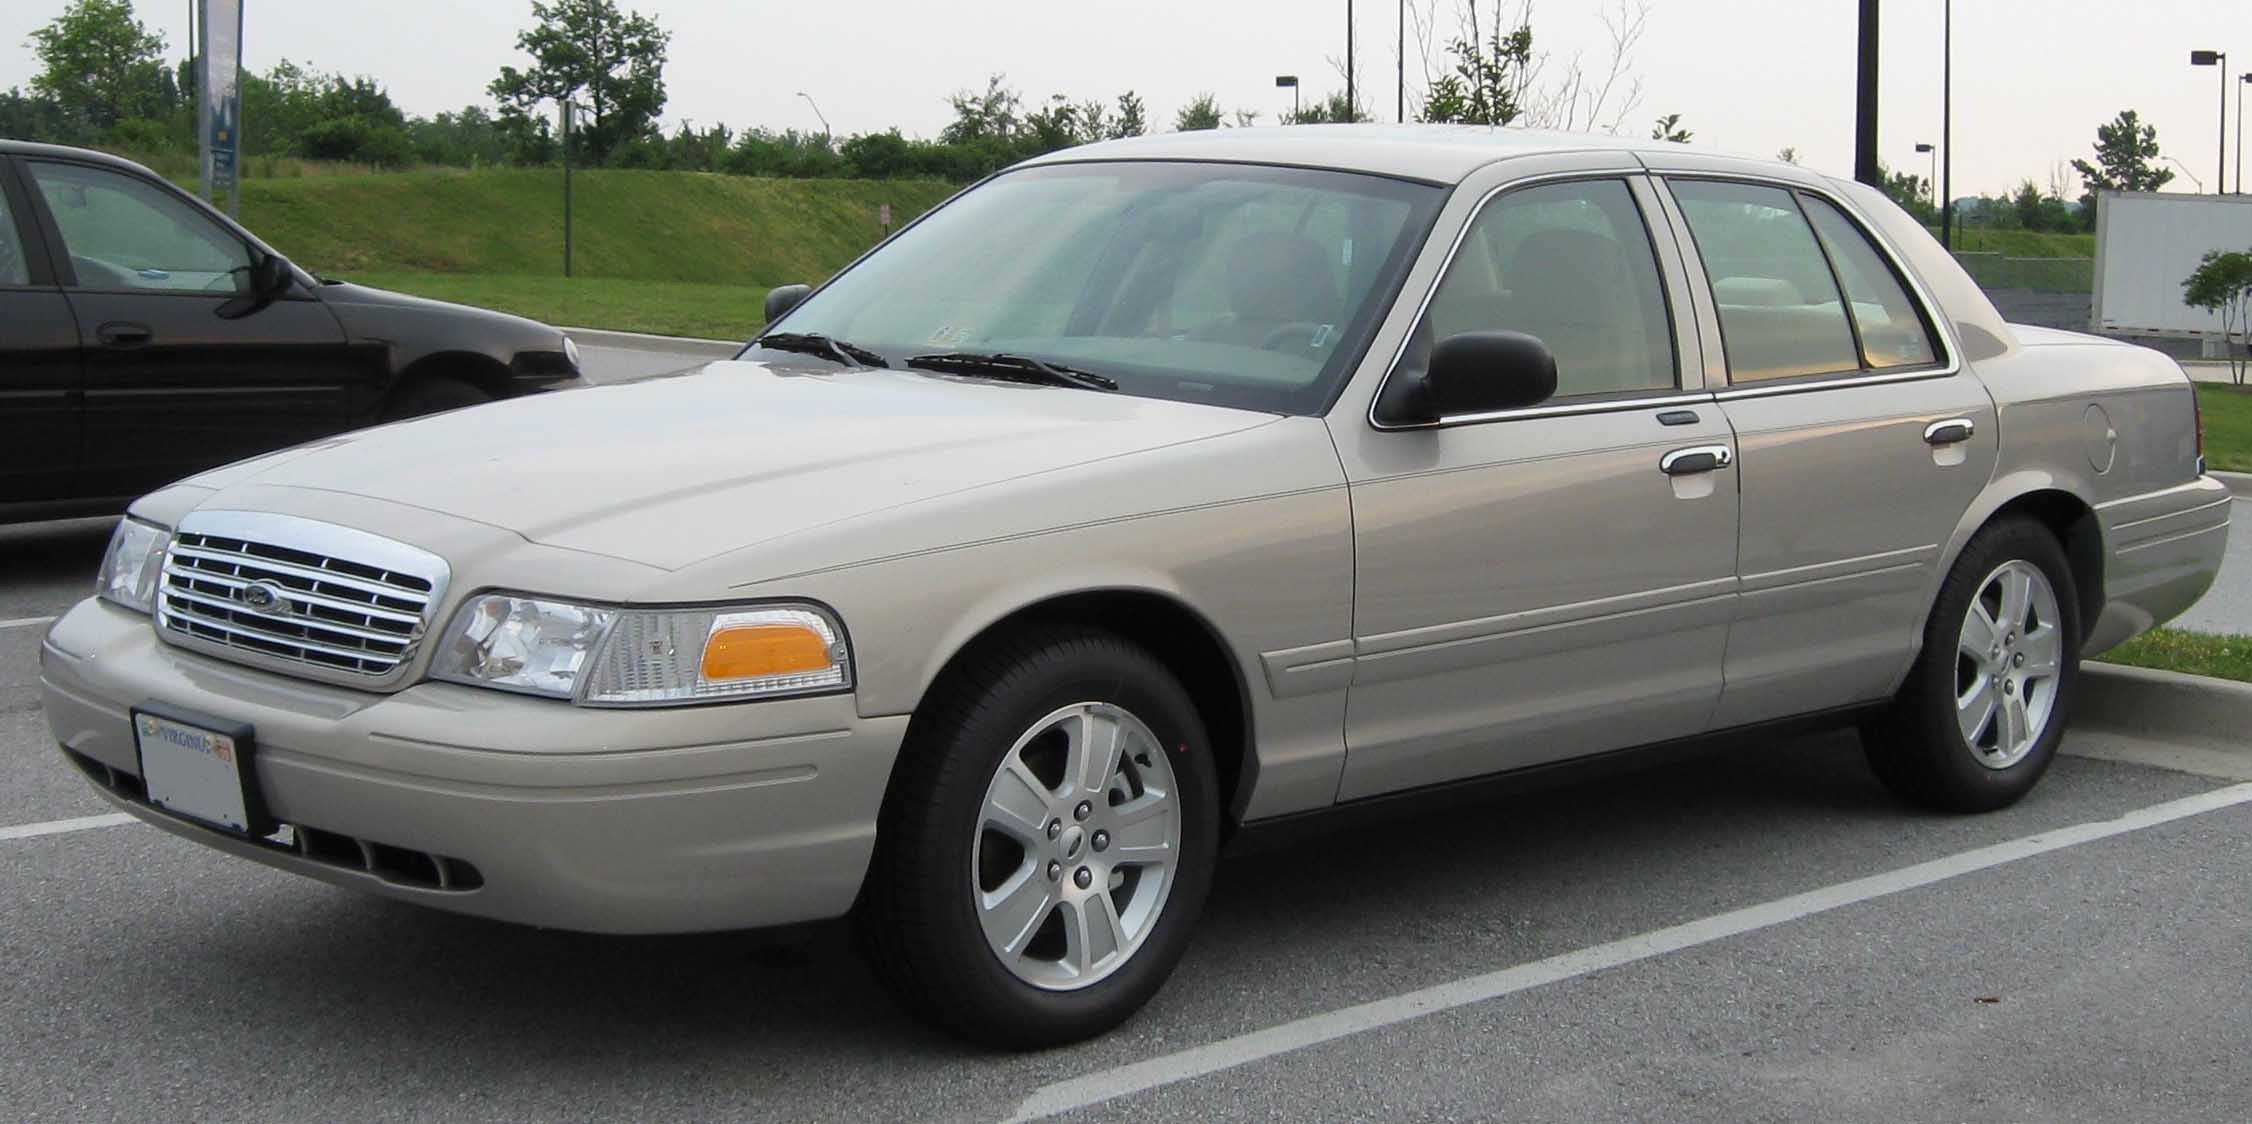 1999 Ford Crown Victoria #1